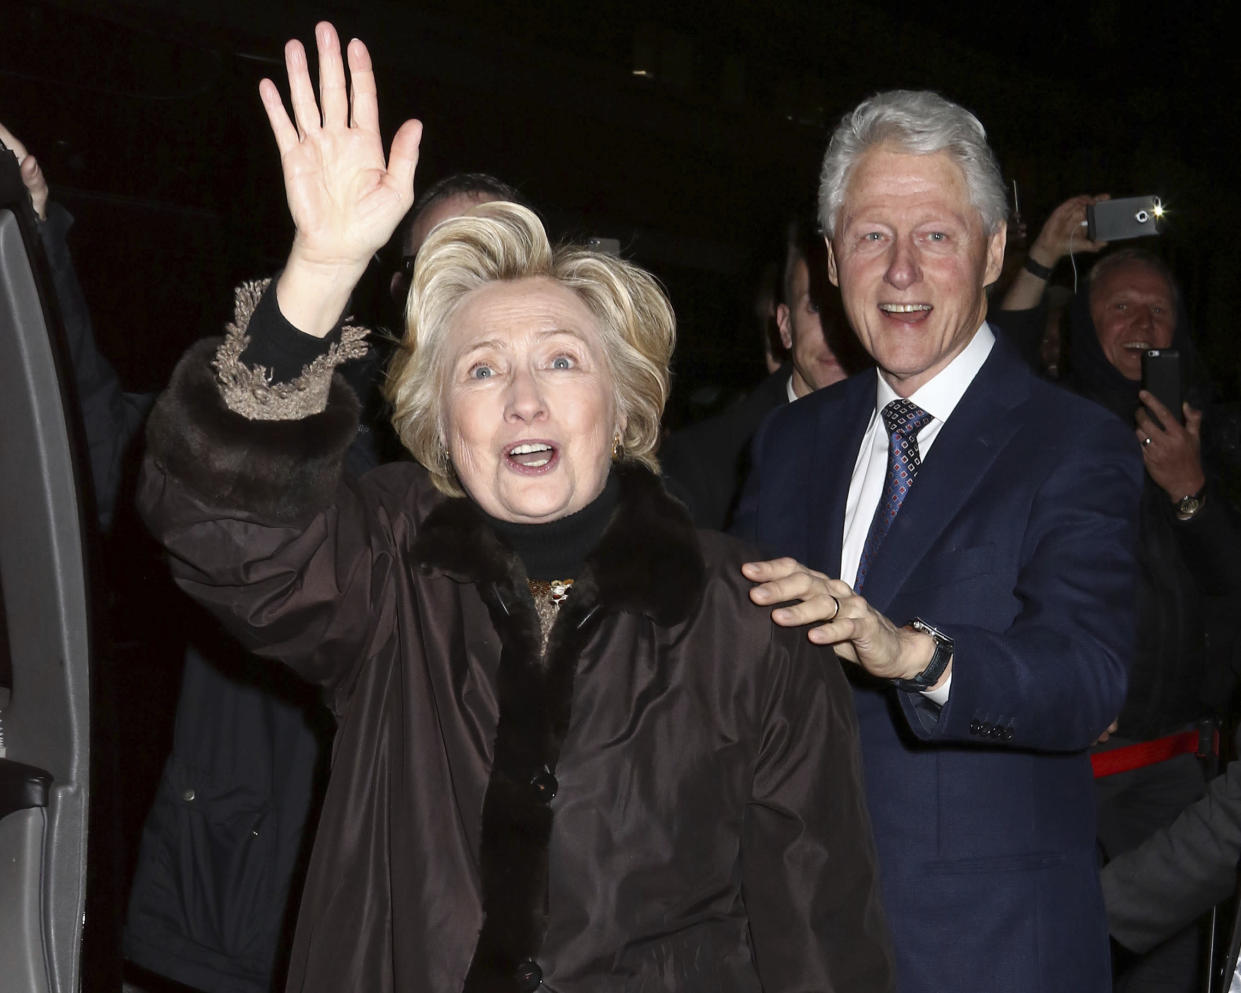 Former Secretary of State Hillary Clinton and former President Bill Clinton attend a Broadway musical at Circle in the Square Theatre in New York in February 2017. (Photo by Greg Allen/Invision/AP)